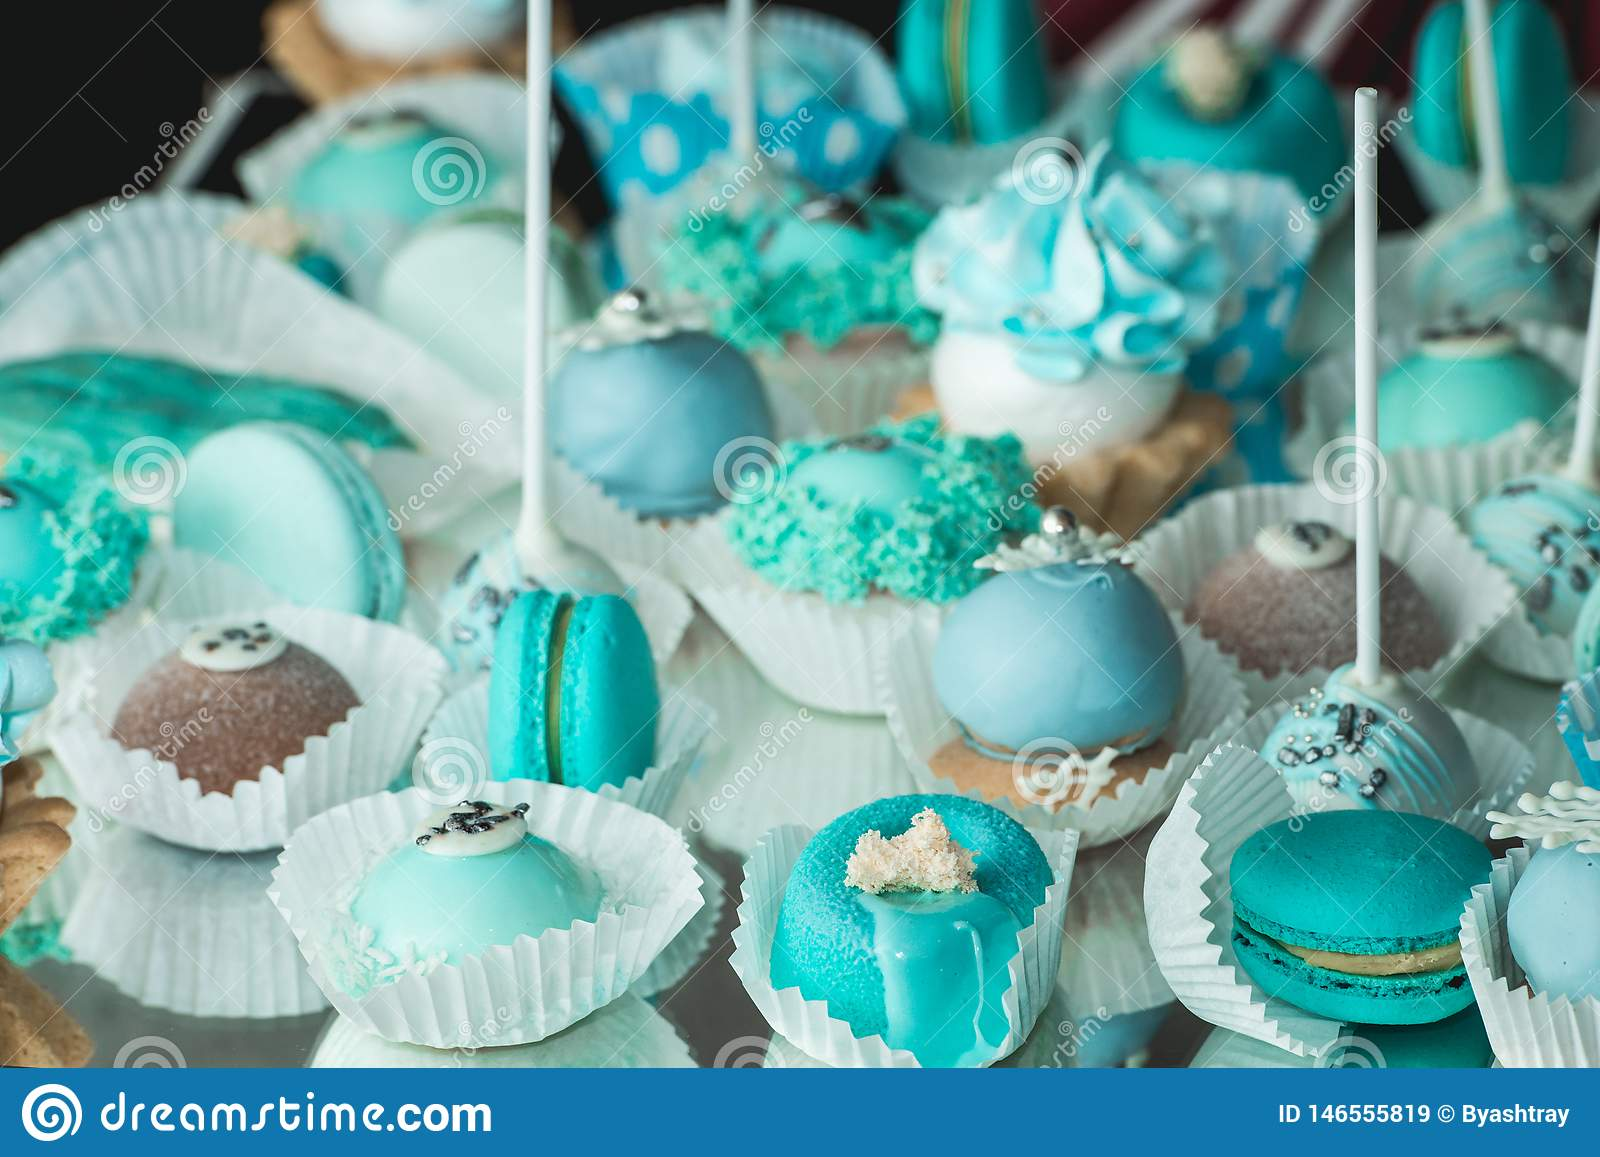 Sweet almond colorful tiffany colored blue macaron or macaroon dessert cake. French sweet cookie. Minimal food bakery concept